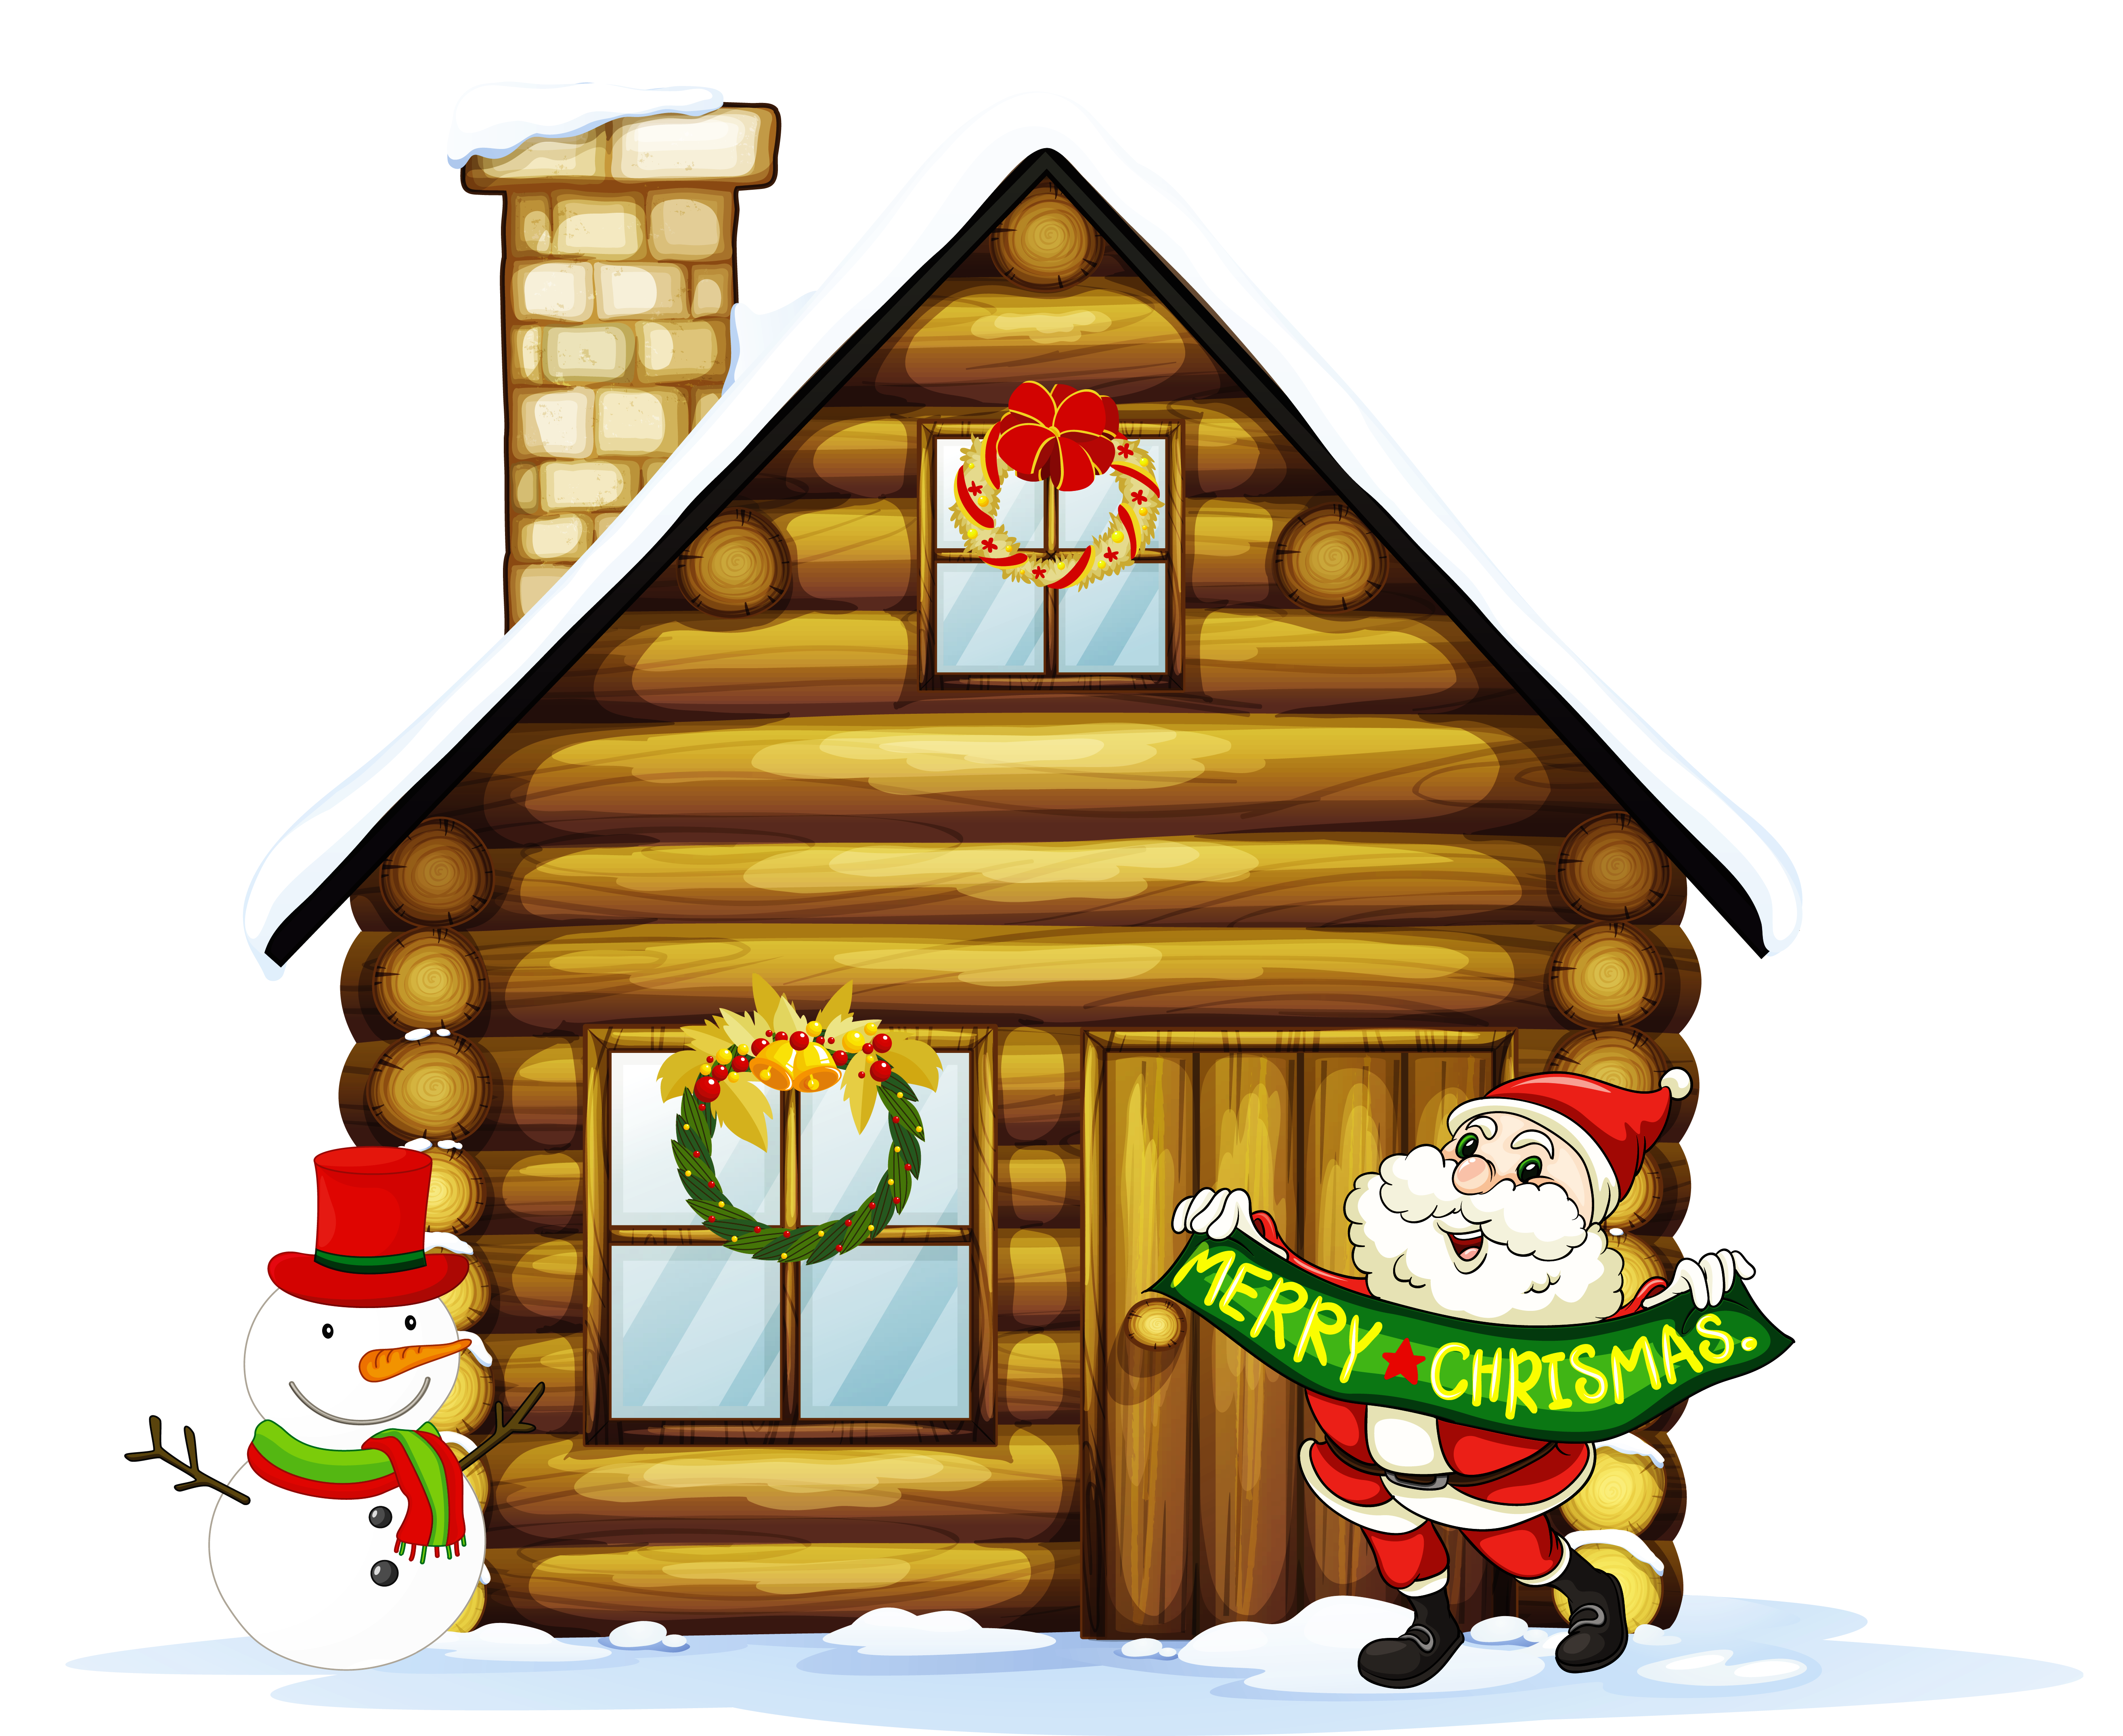 Transparent Christmas House with Santa and Snowman Clipart.